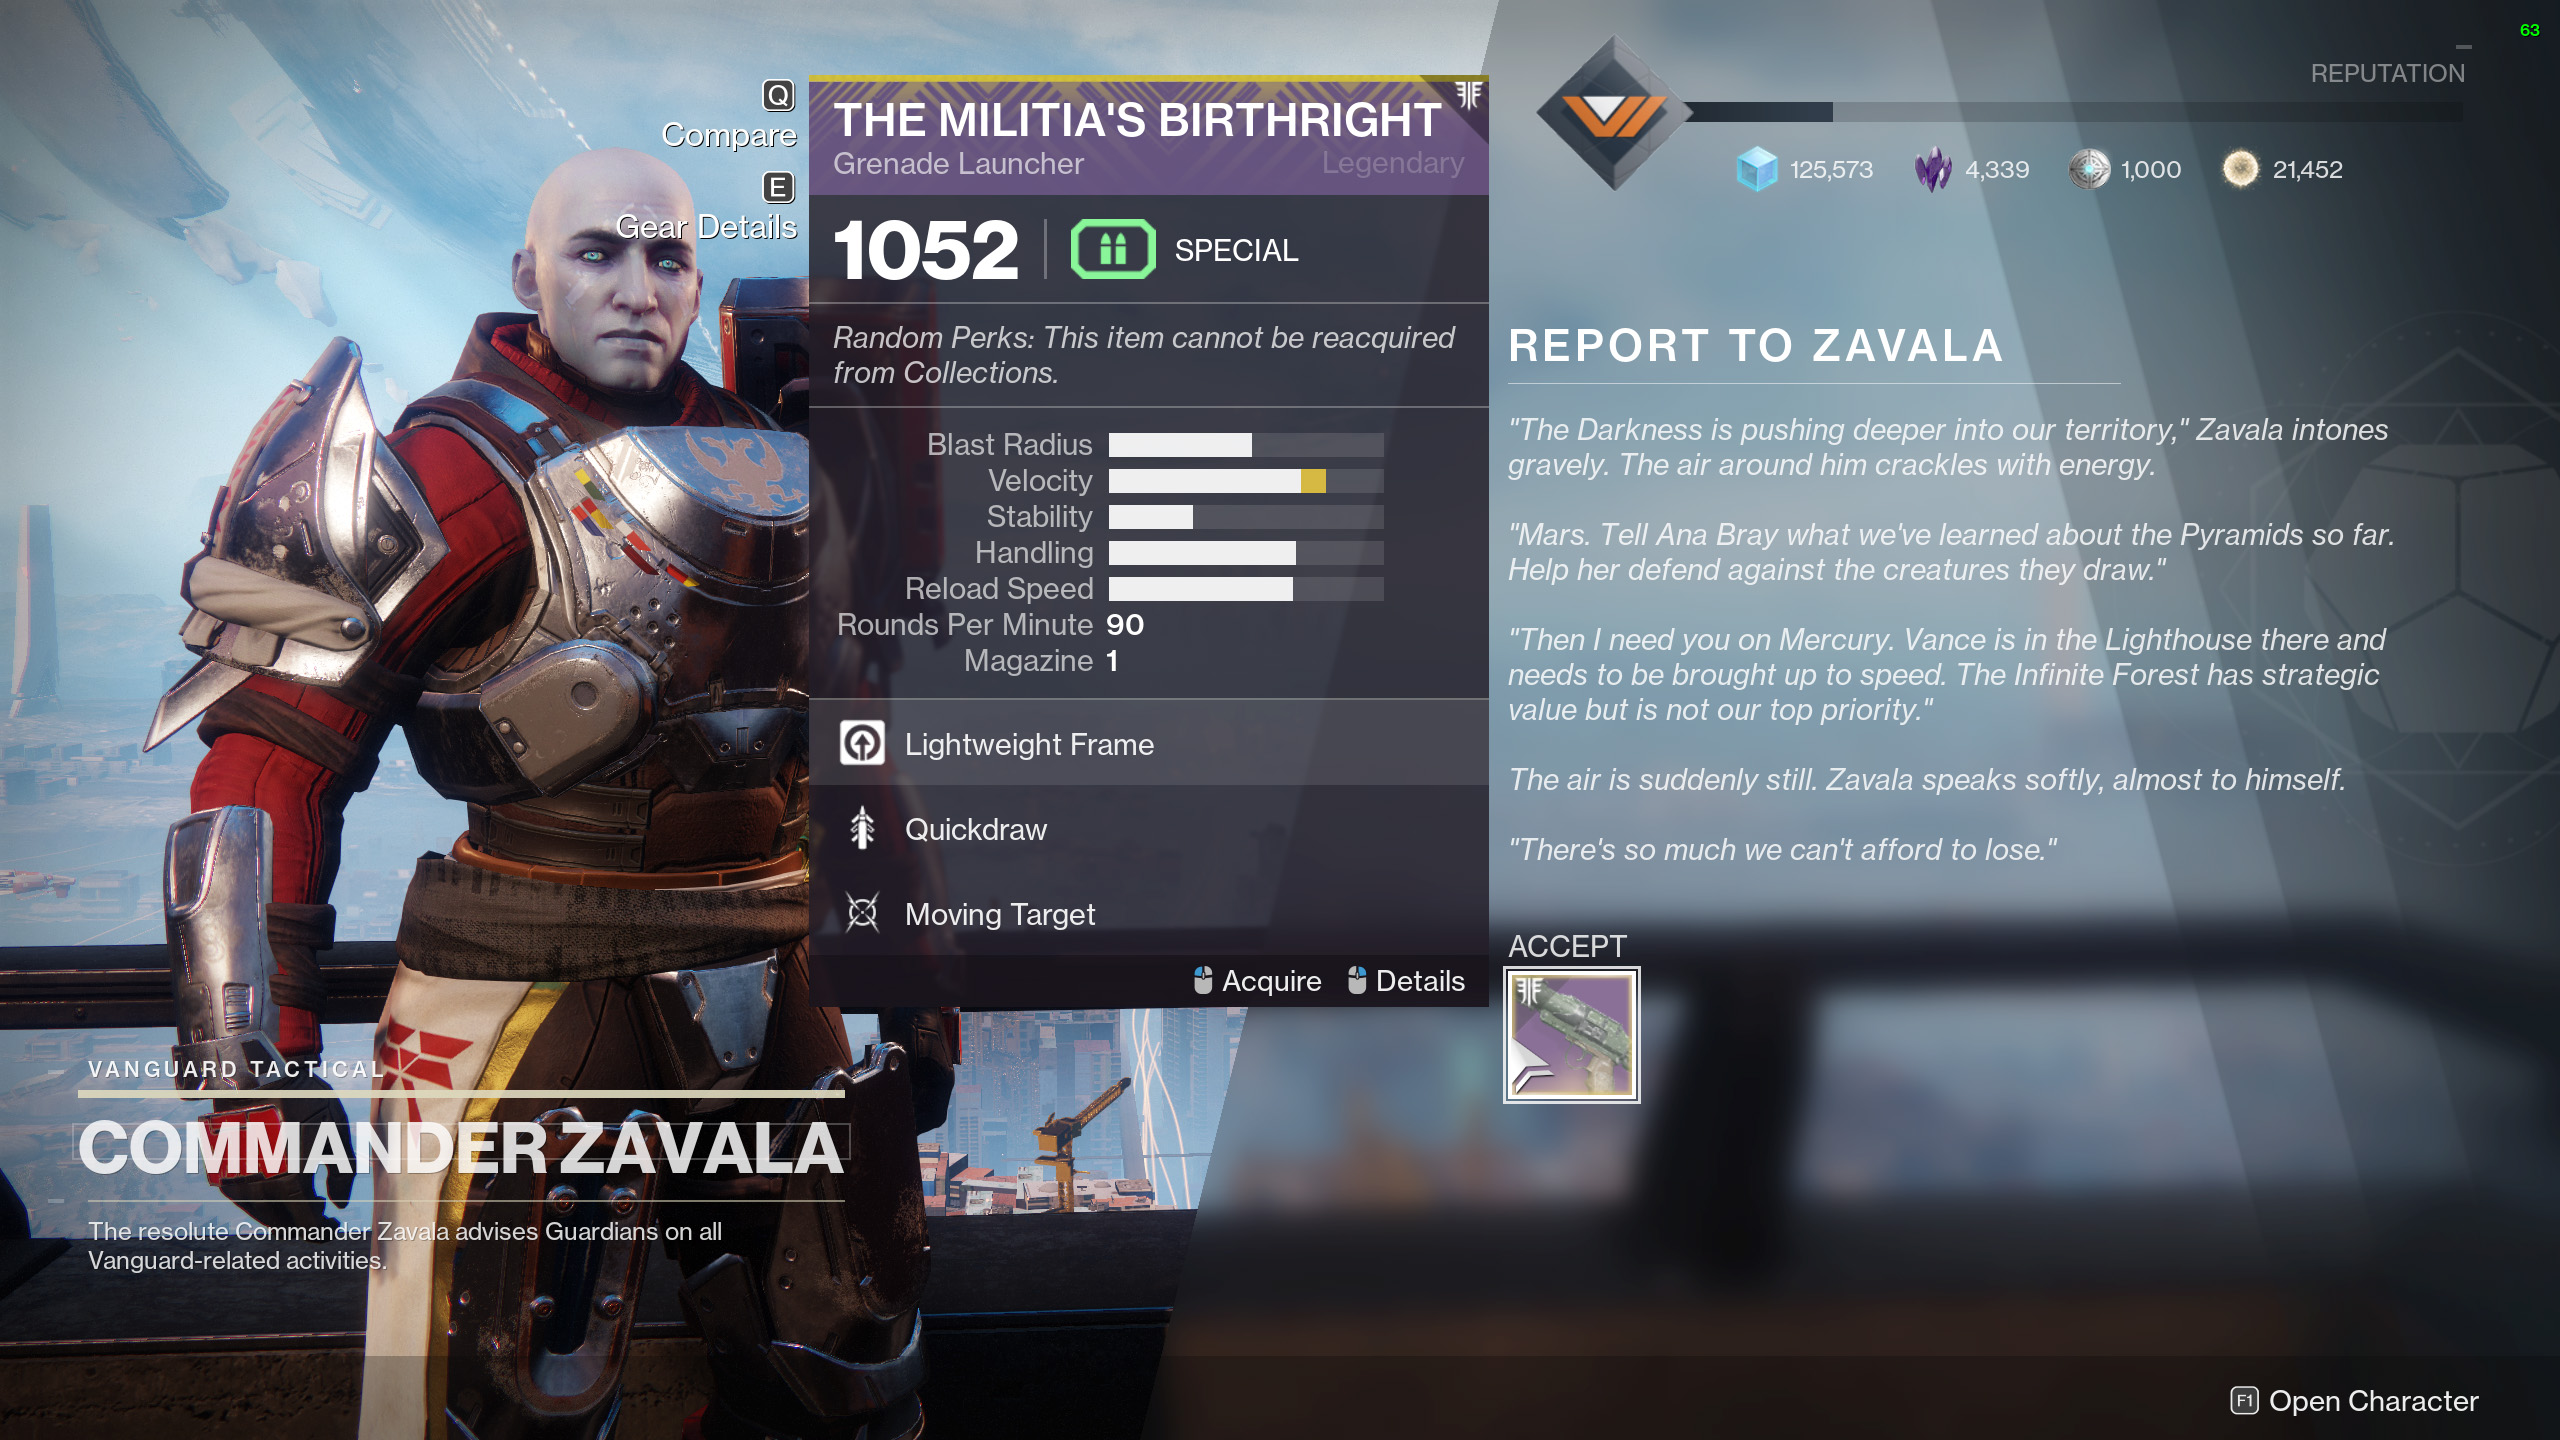 Exodus Preparation Militia's Birthright destiny 2